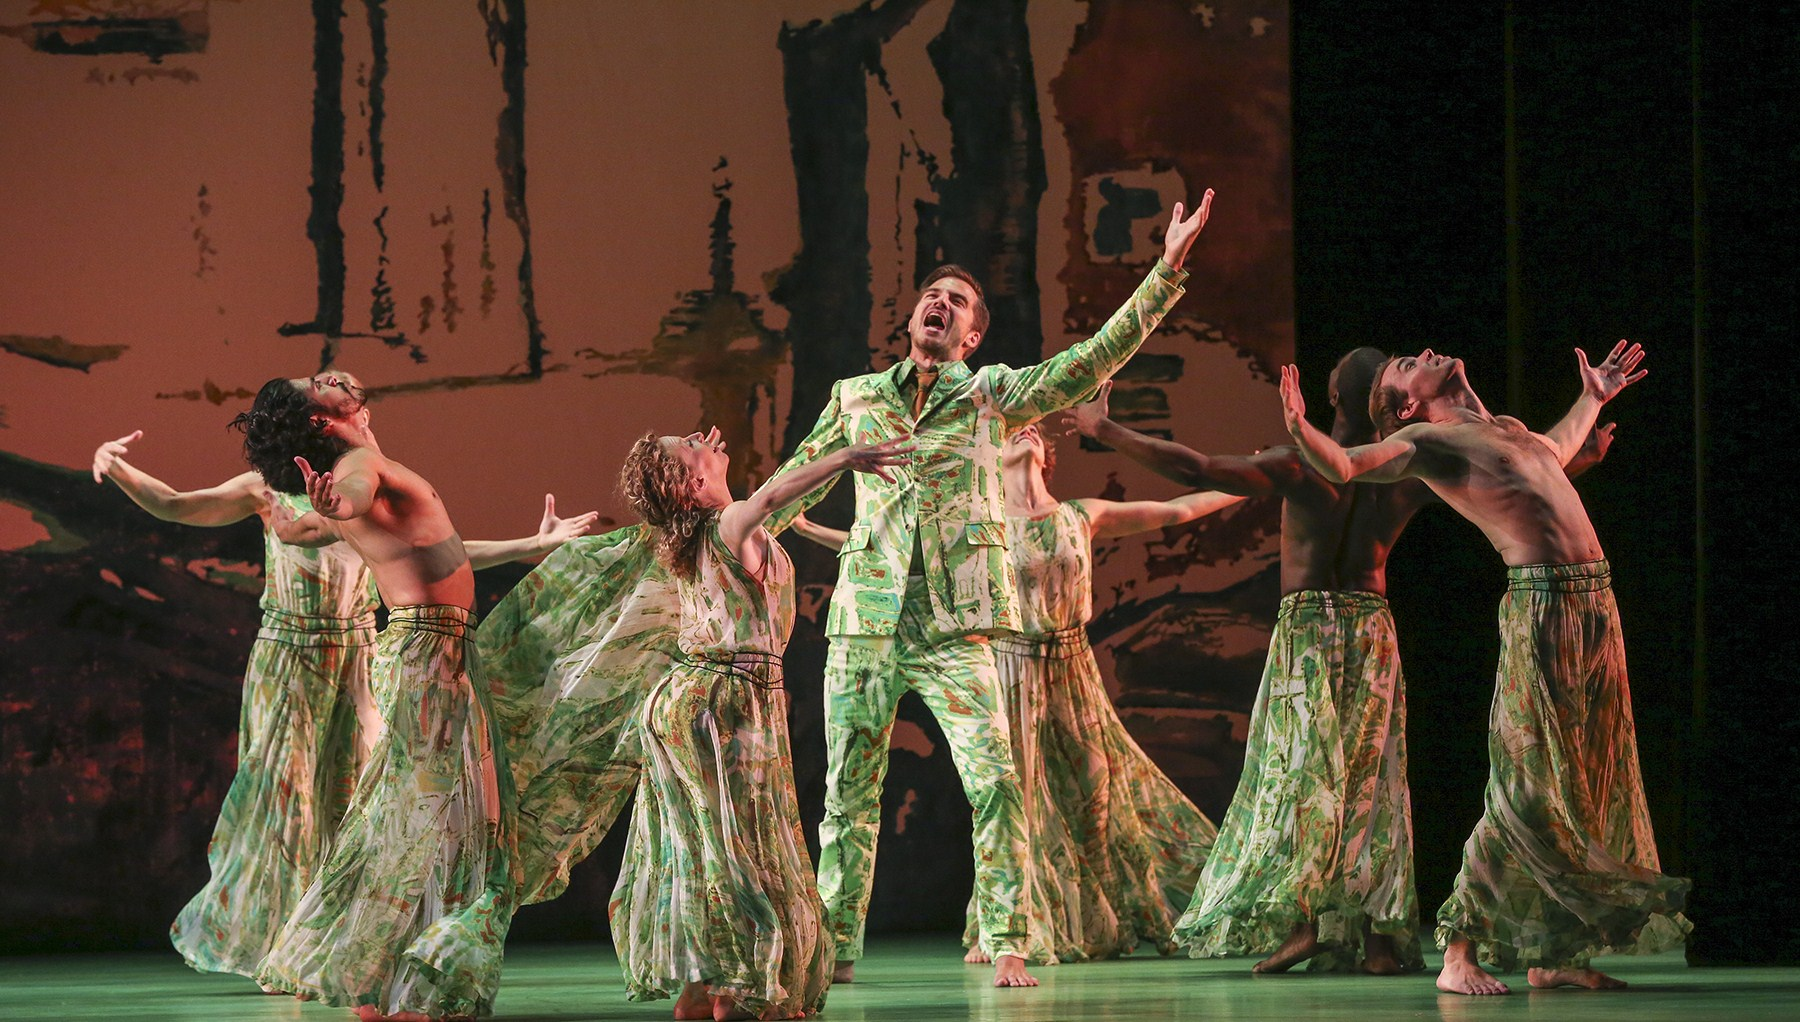 COME, THOU FOUNT: Choreographer and star team create dazzling new vision of Handel